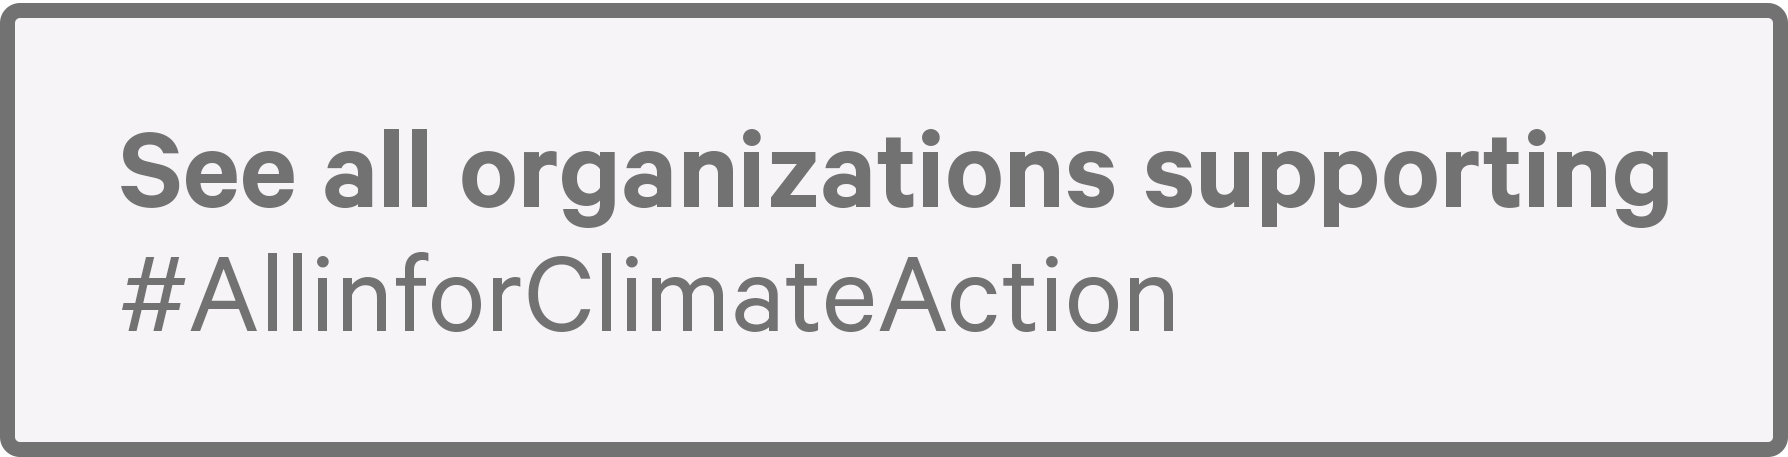 See all organizations supporting #AllinforClimateAction